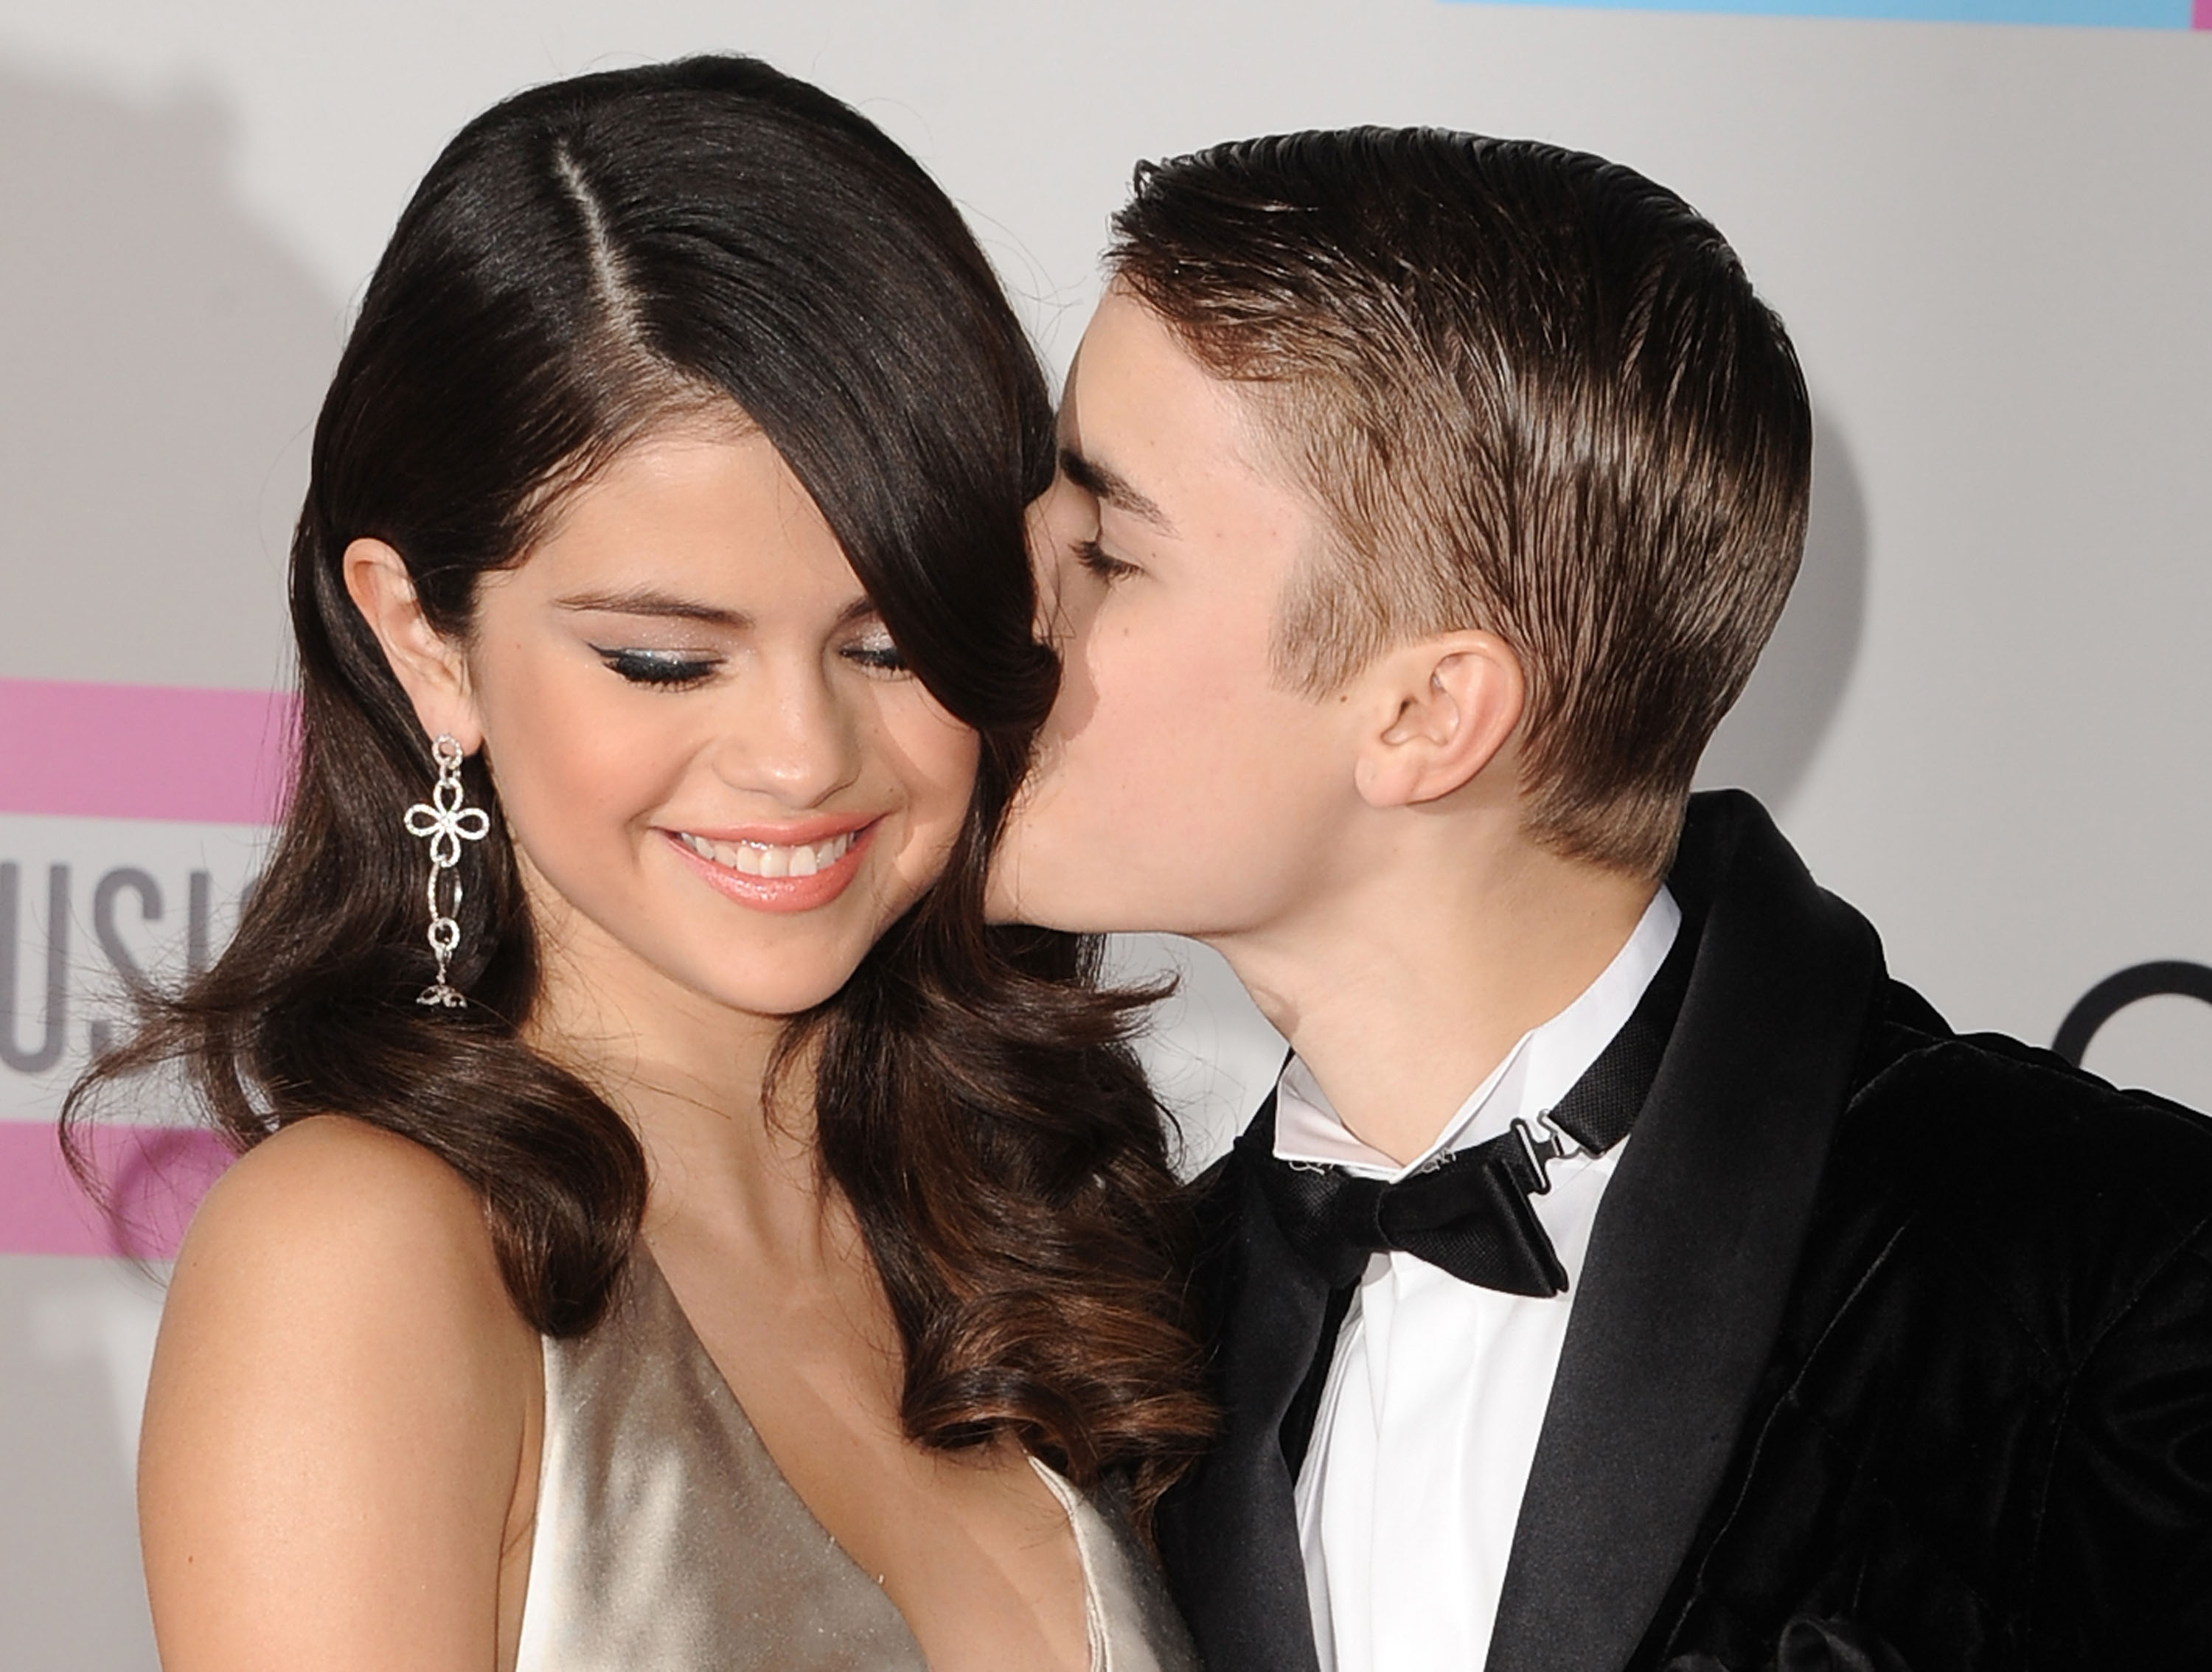 LOS ANGELES, CA - NOVEMBER 20: Selena Gomez and Justin Bieber arrives at the 2011 American Music Awards at Nokia Theatre L.A. Live on November 20, 2011 in Los Angeles, California. (Photo by Steve Granitz/WireImage)